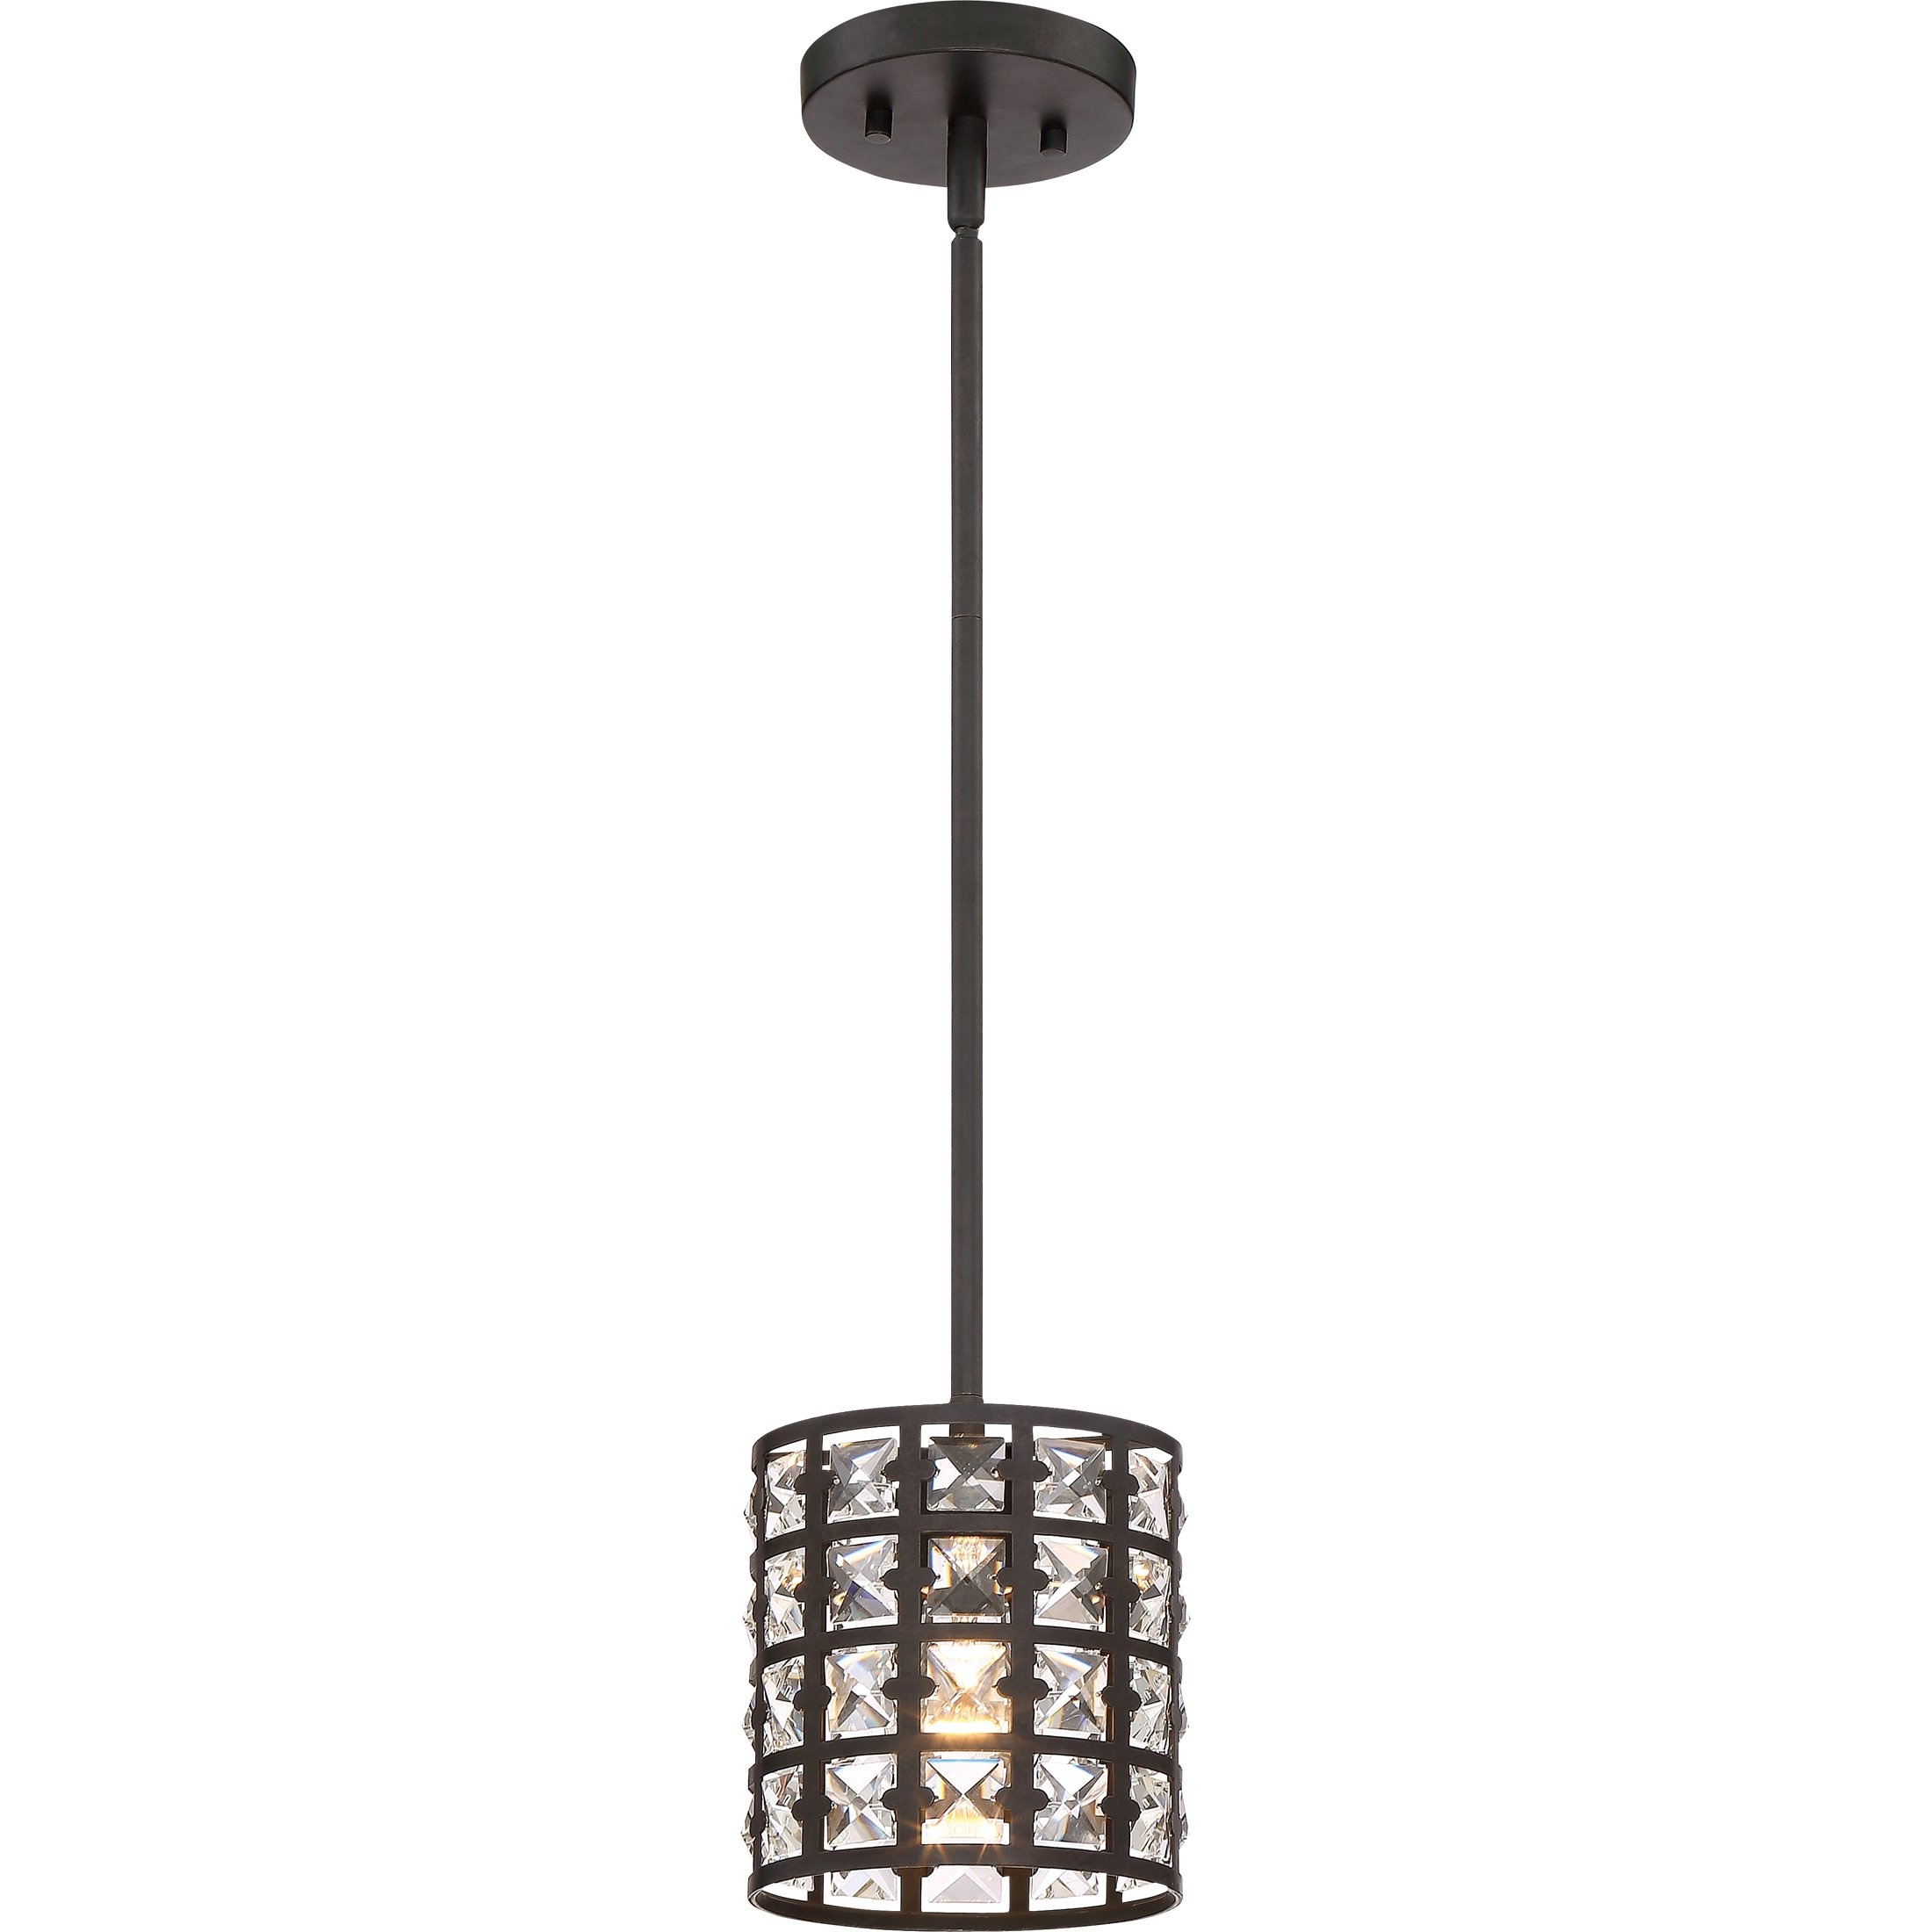 Quoizel One Light Mini Pendant LXY1506IB, Small, Imperial Bronze by Quoizel (Image #1)